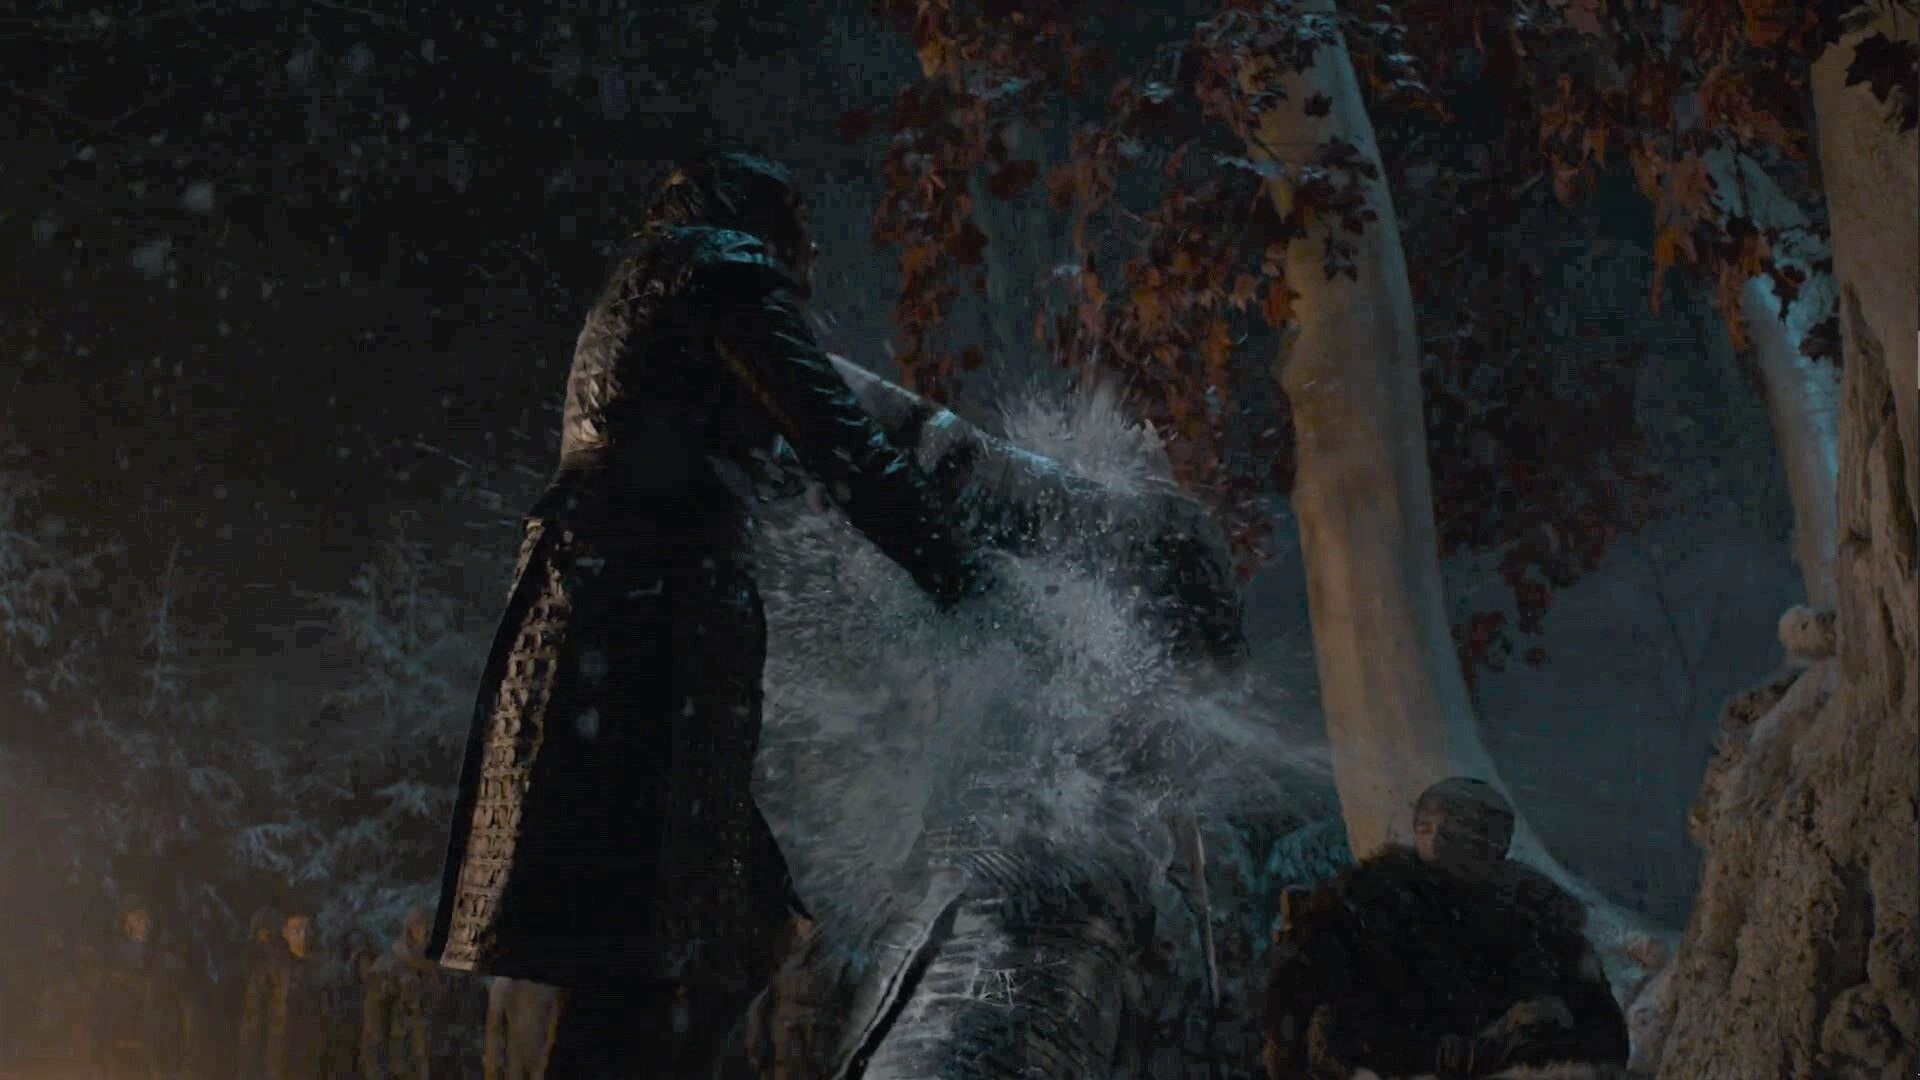 Arya S Big Moment Sets Up The Game Of Thrones Ending We Deserve